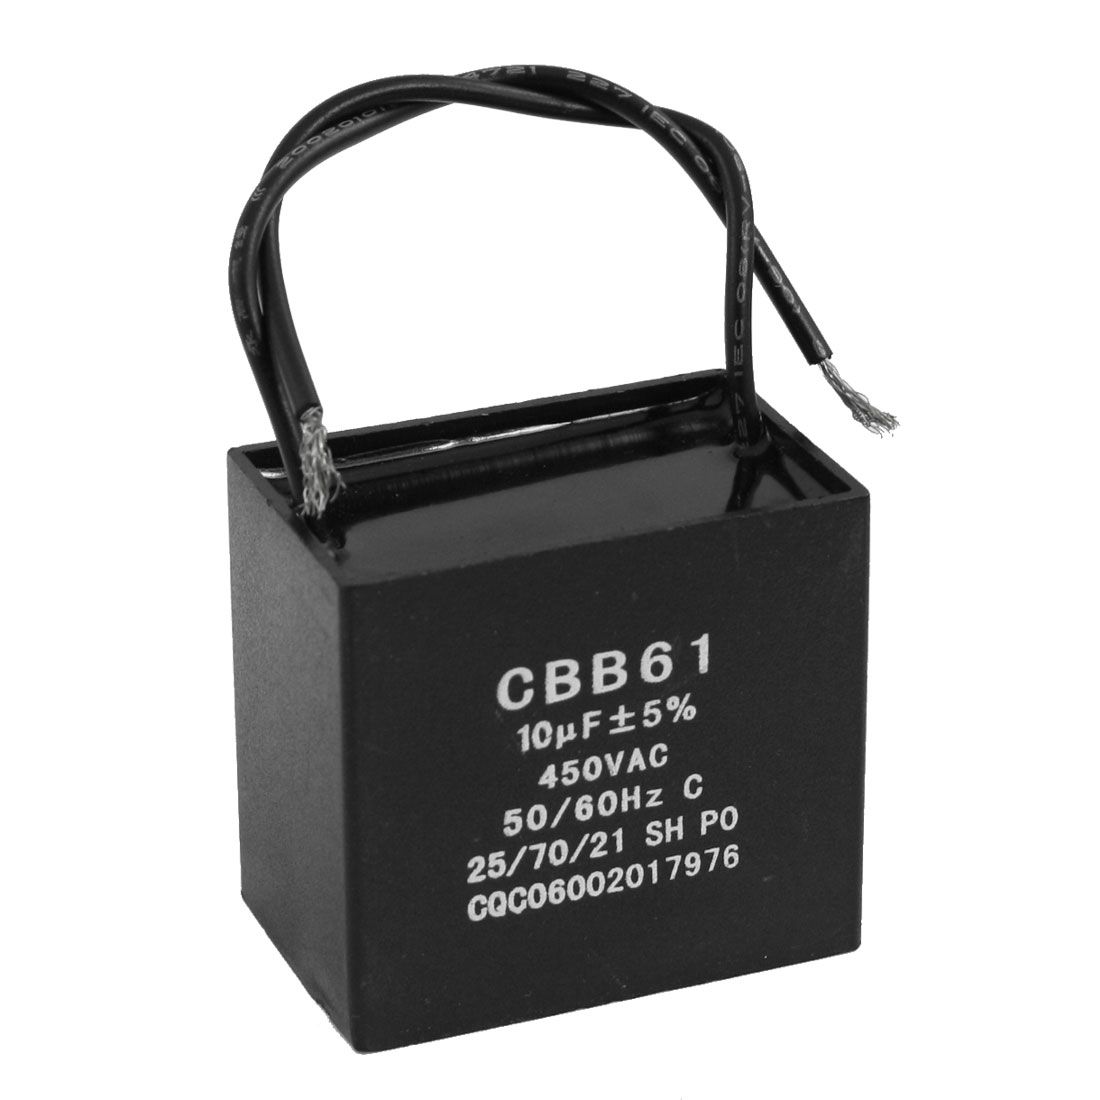 CBB61 SH 450V 10uF Polypropylene Film Motor Run Capacitor Black